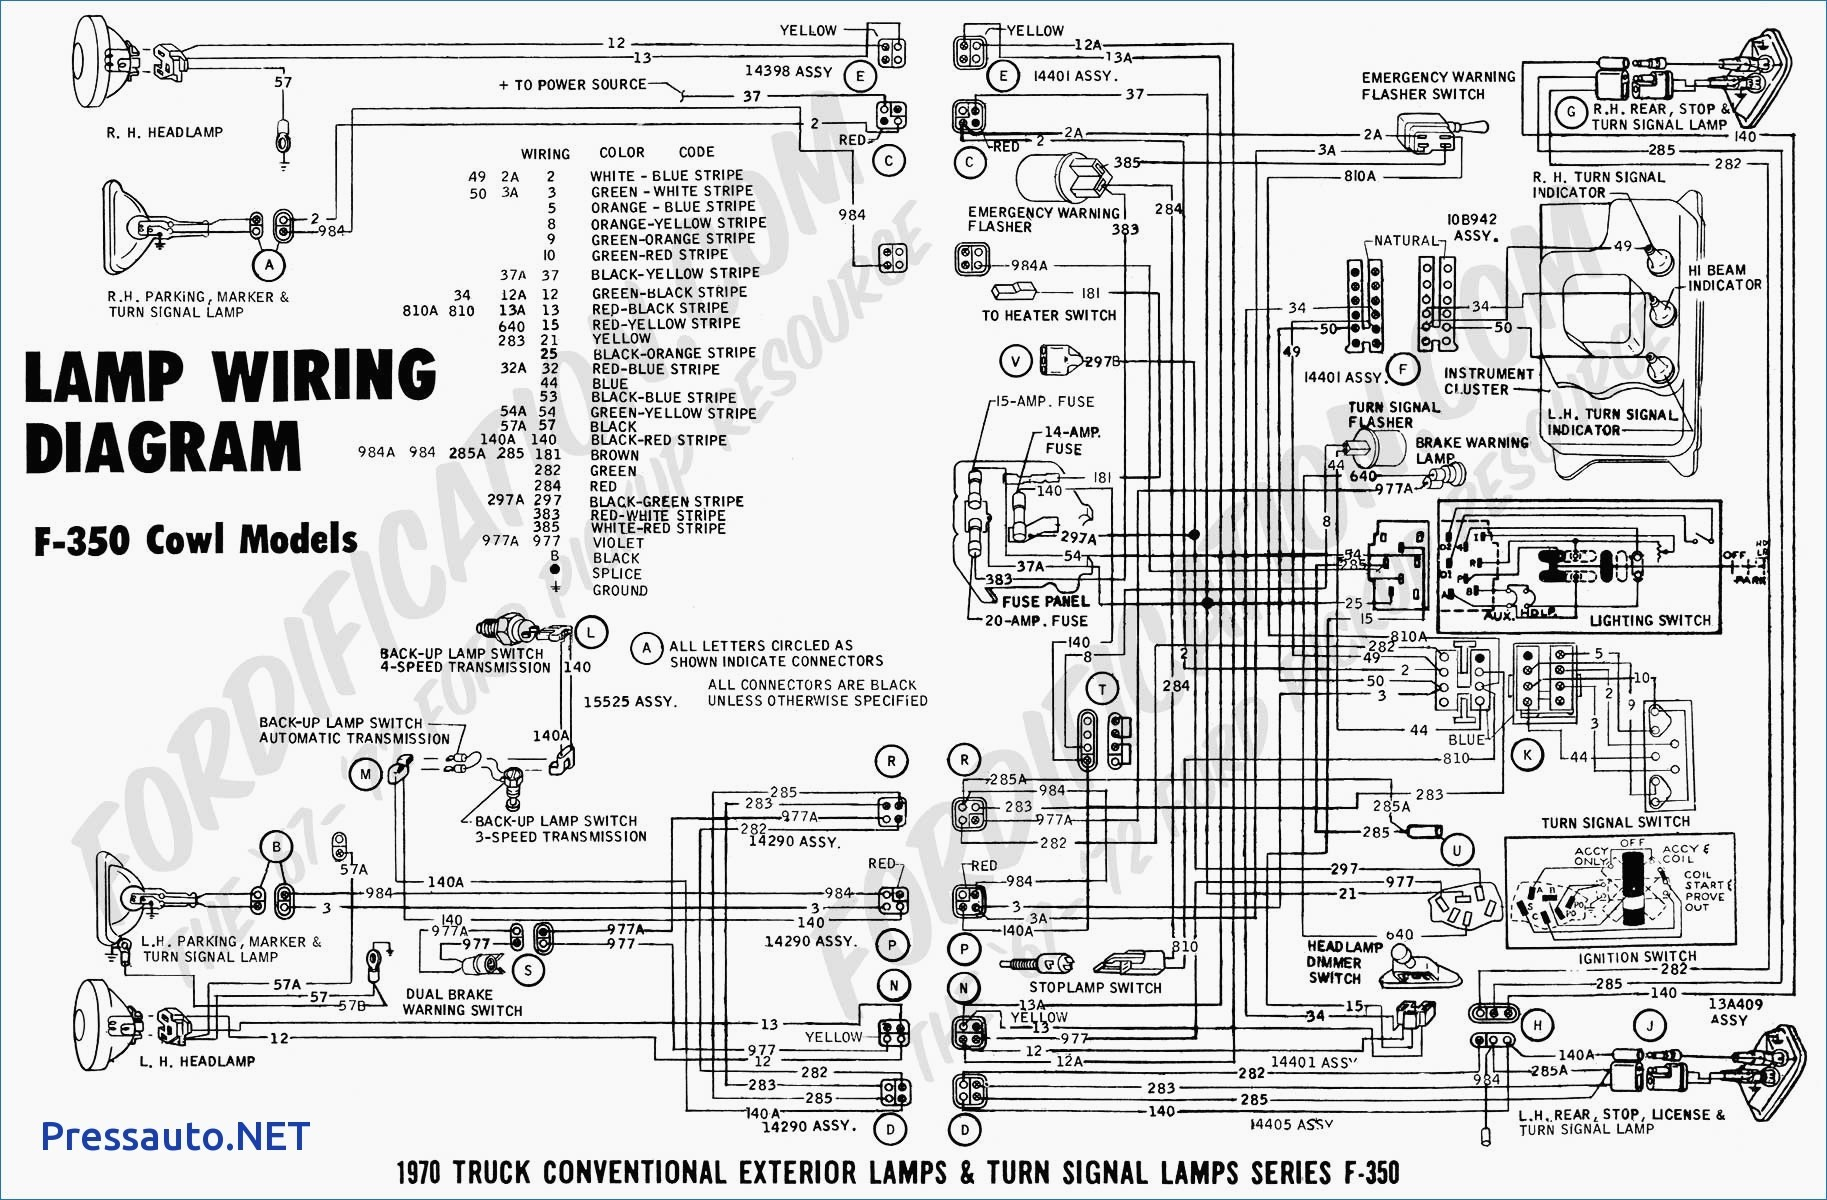 1996 Ford Ranger Trailer Wiring Diagram Detailed Schematic Diagrams Crown Victoria Engine E350